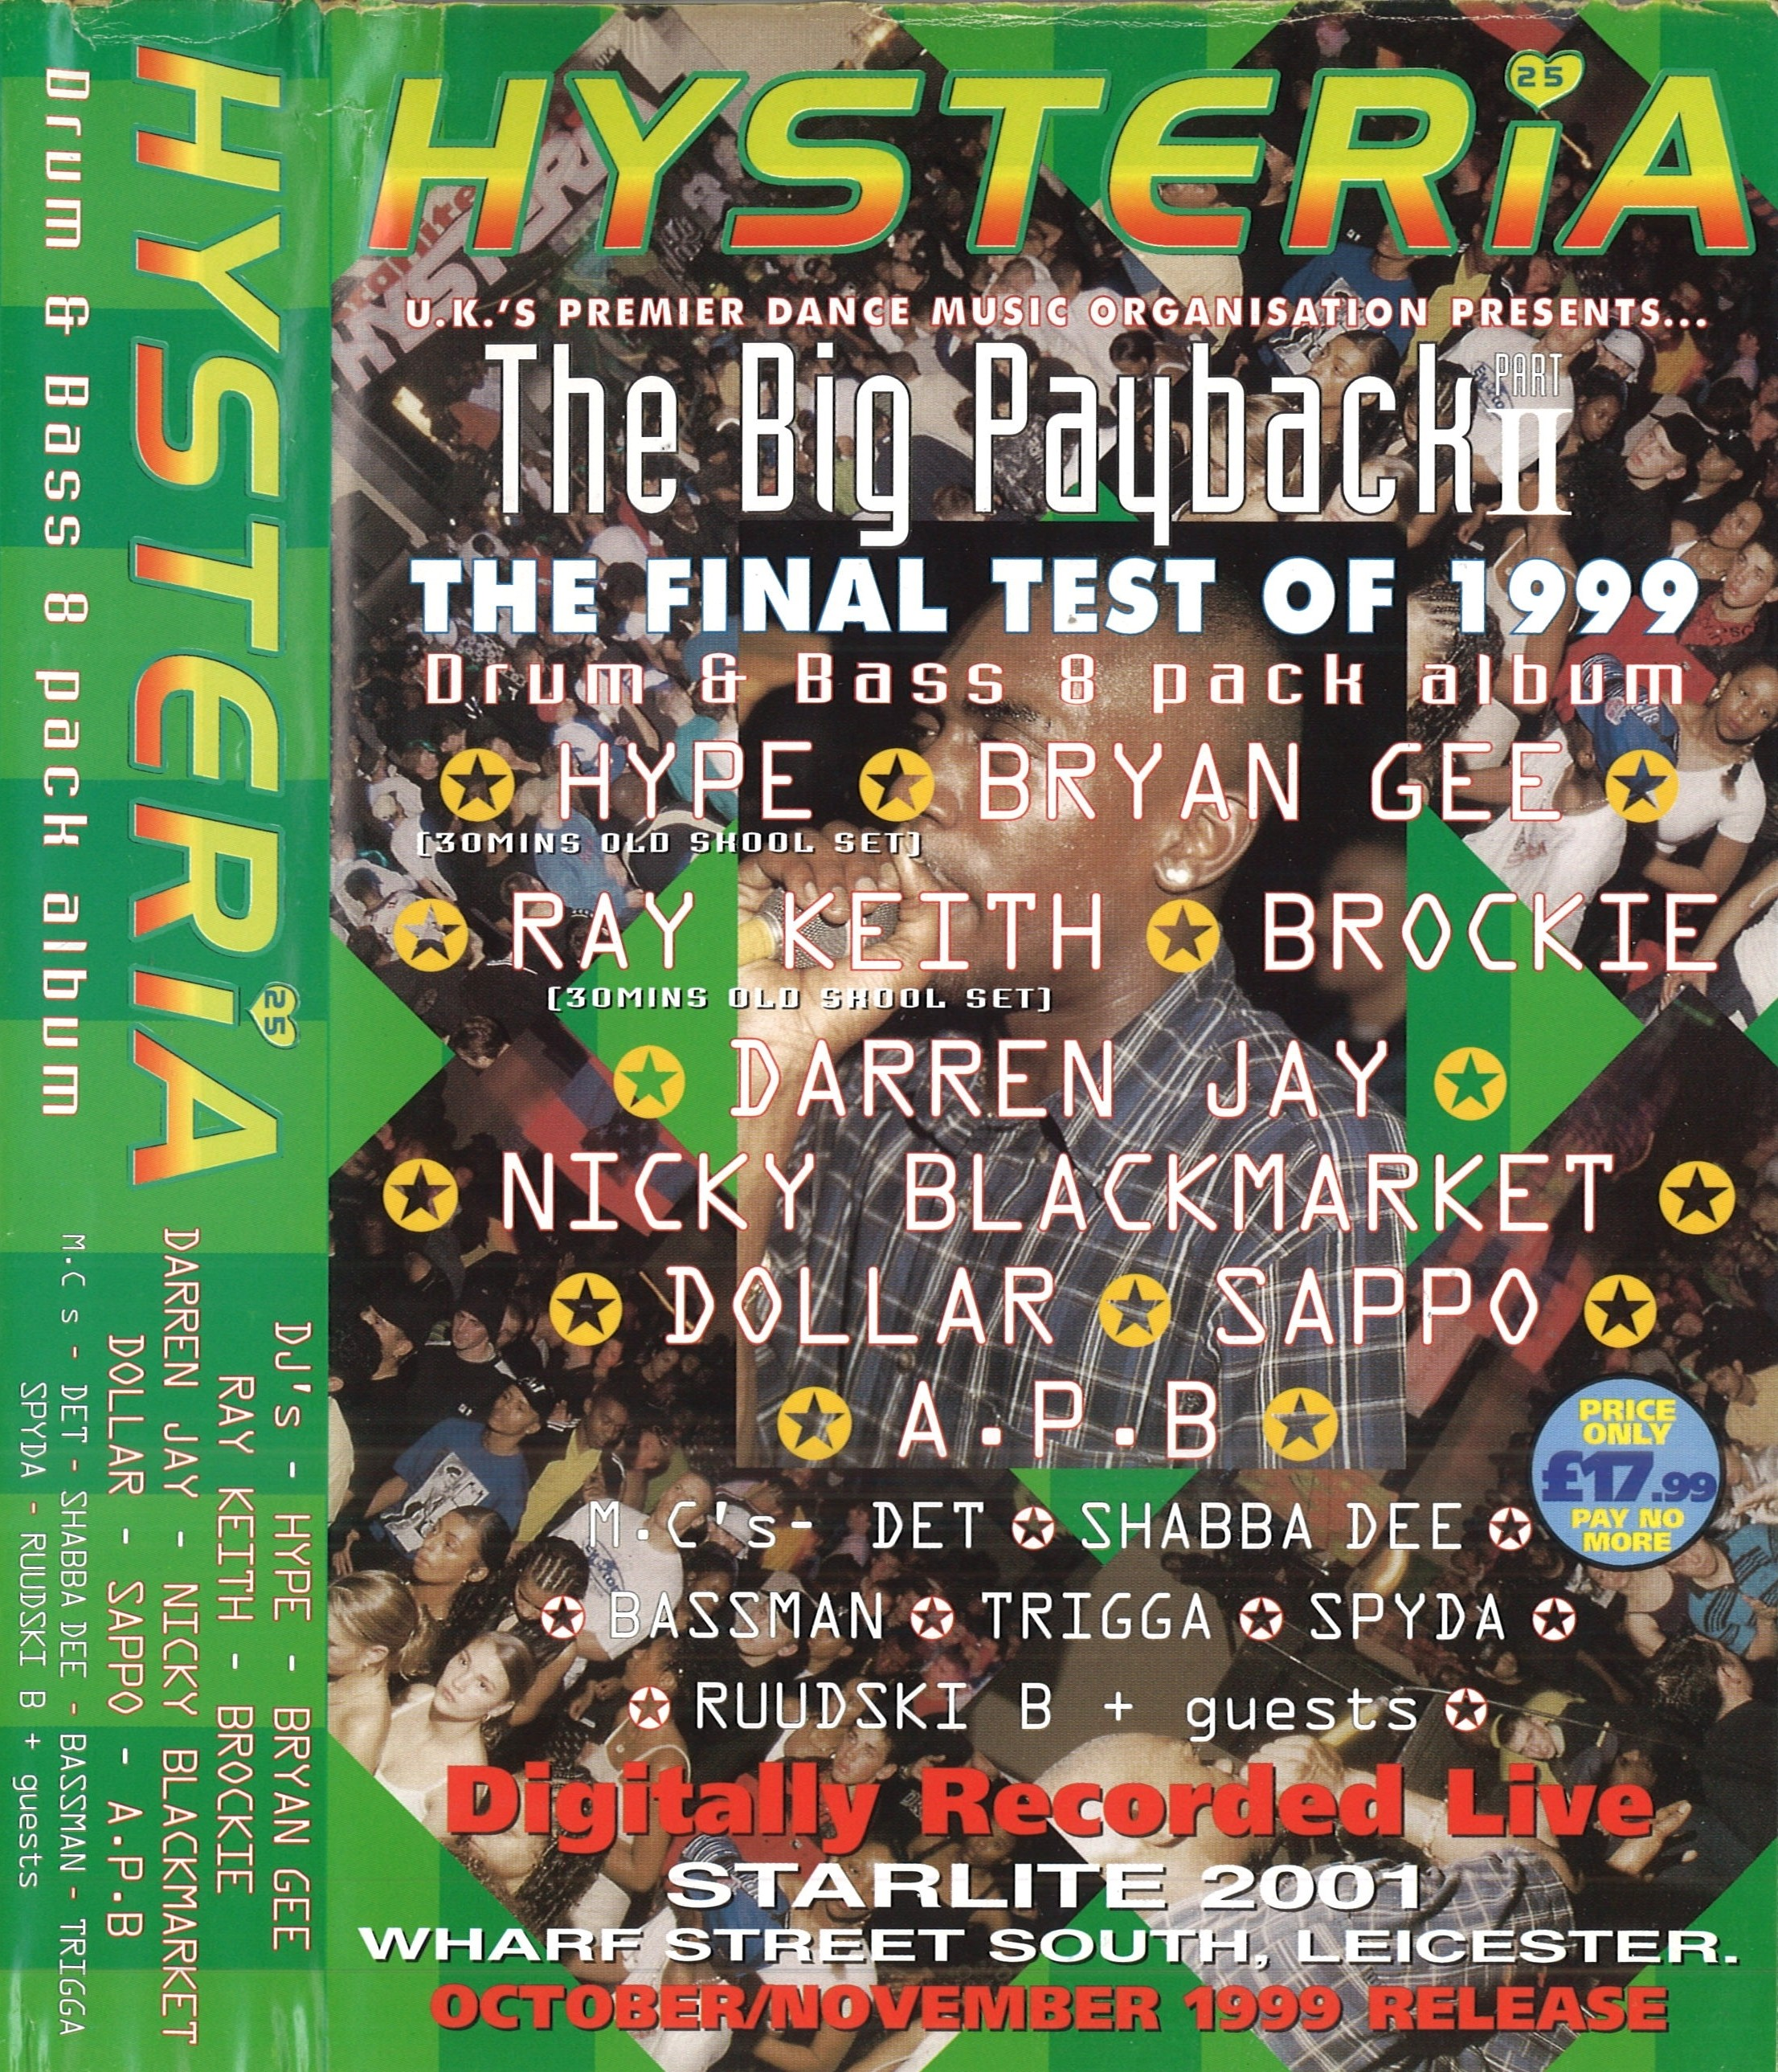 Hysteria 25 'The Big Payback Part II' - 24 09 1999